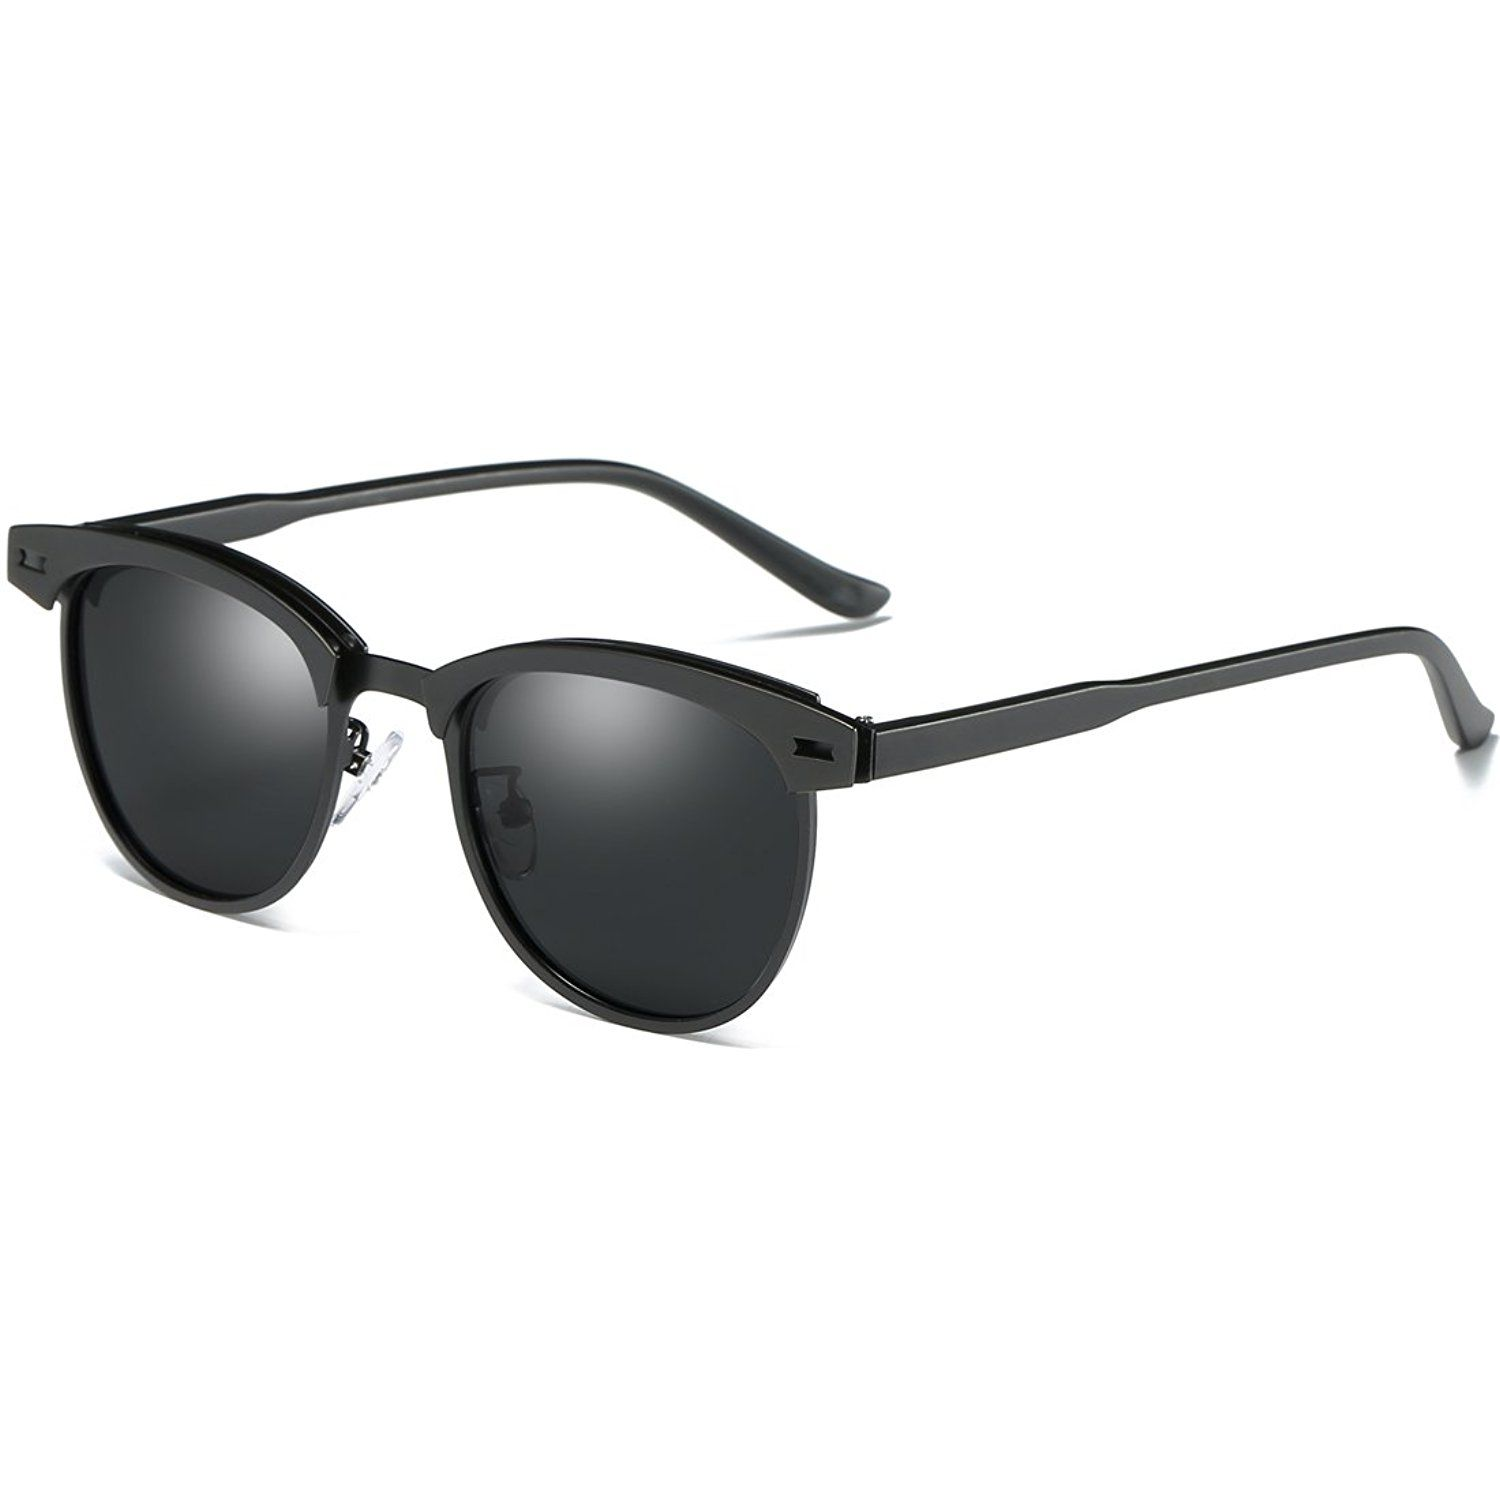 6aa15f9642 Joopin Semi Rimless Polarized Sunglasses Women Men Retro Brand Sun Glasses  -- You can find more details by visiting the image link.